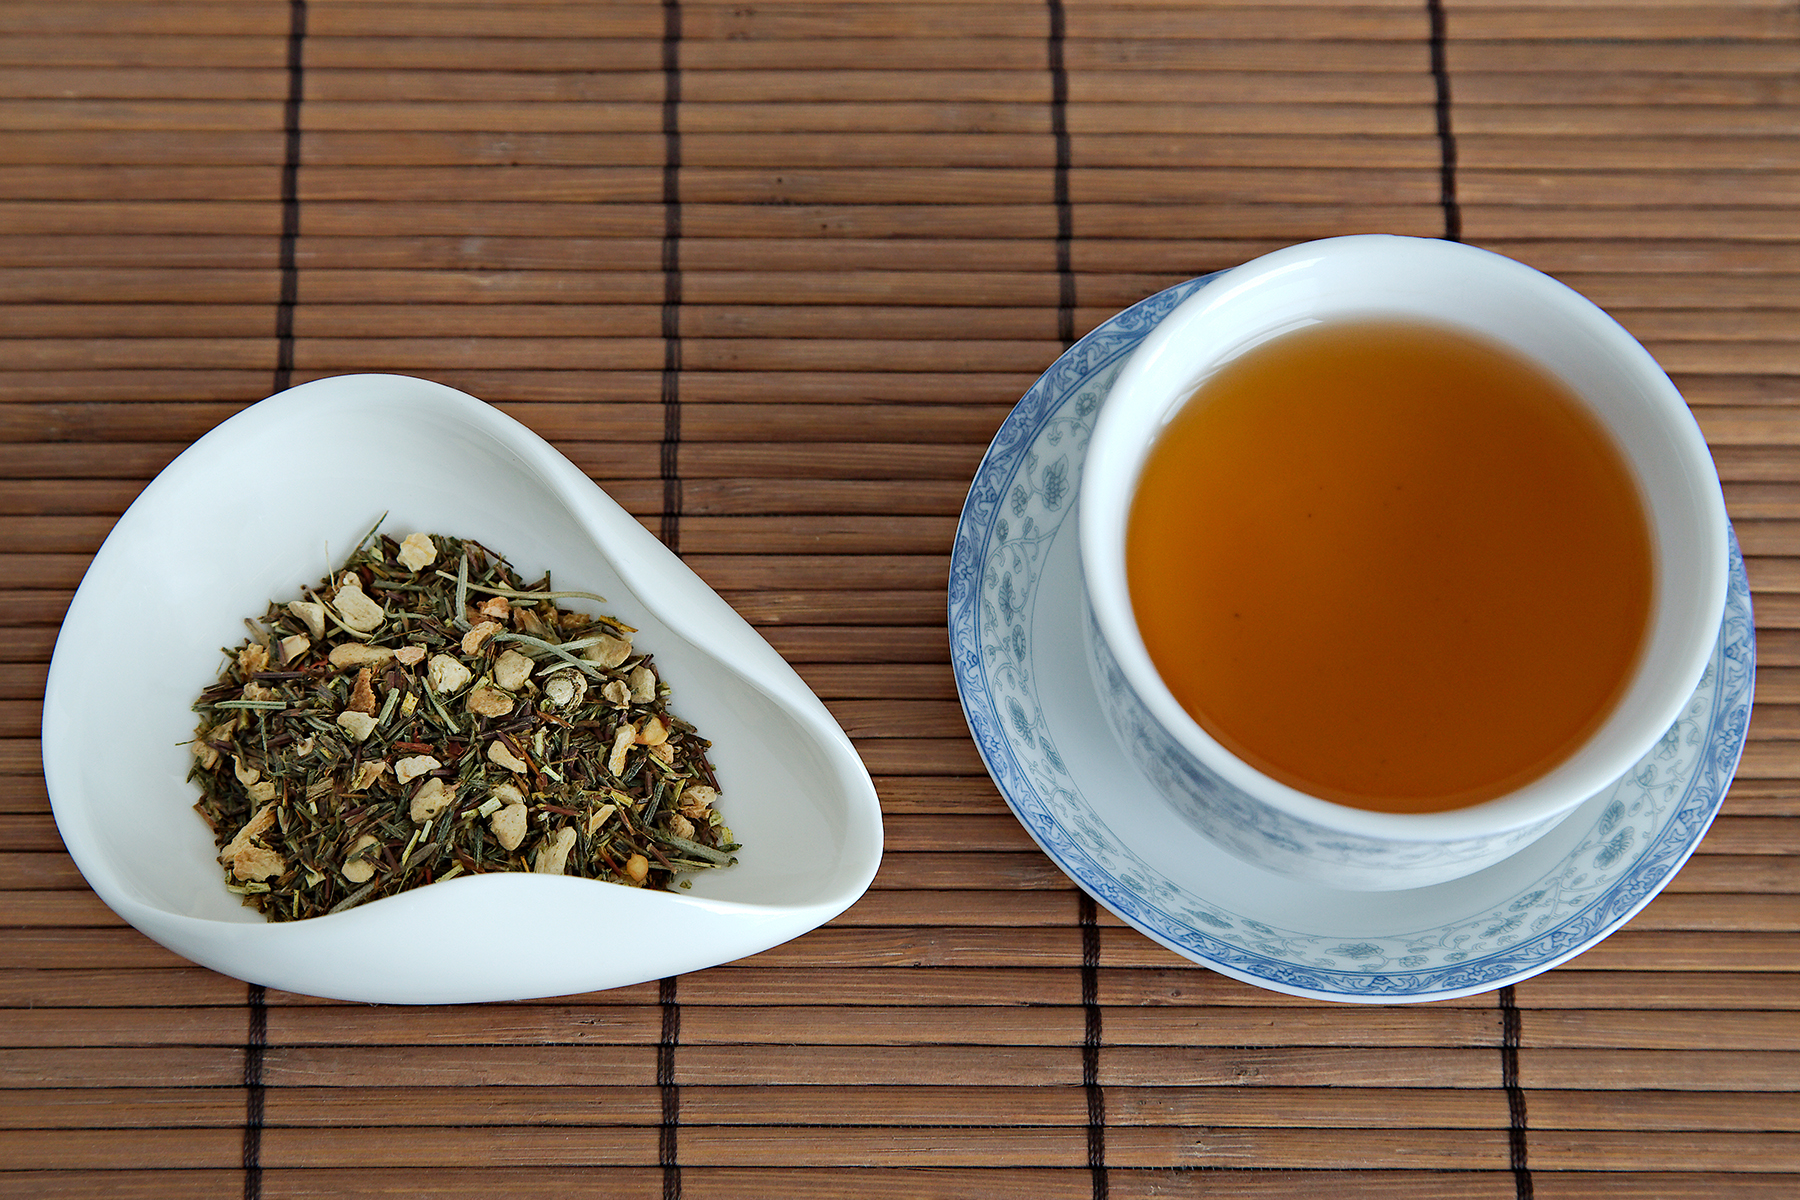 Tea Review: Ginger Chili Tisane - Arbor Teas